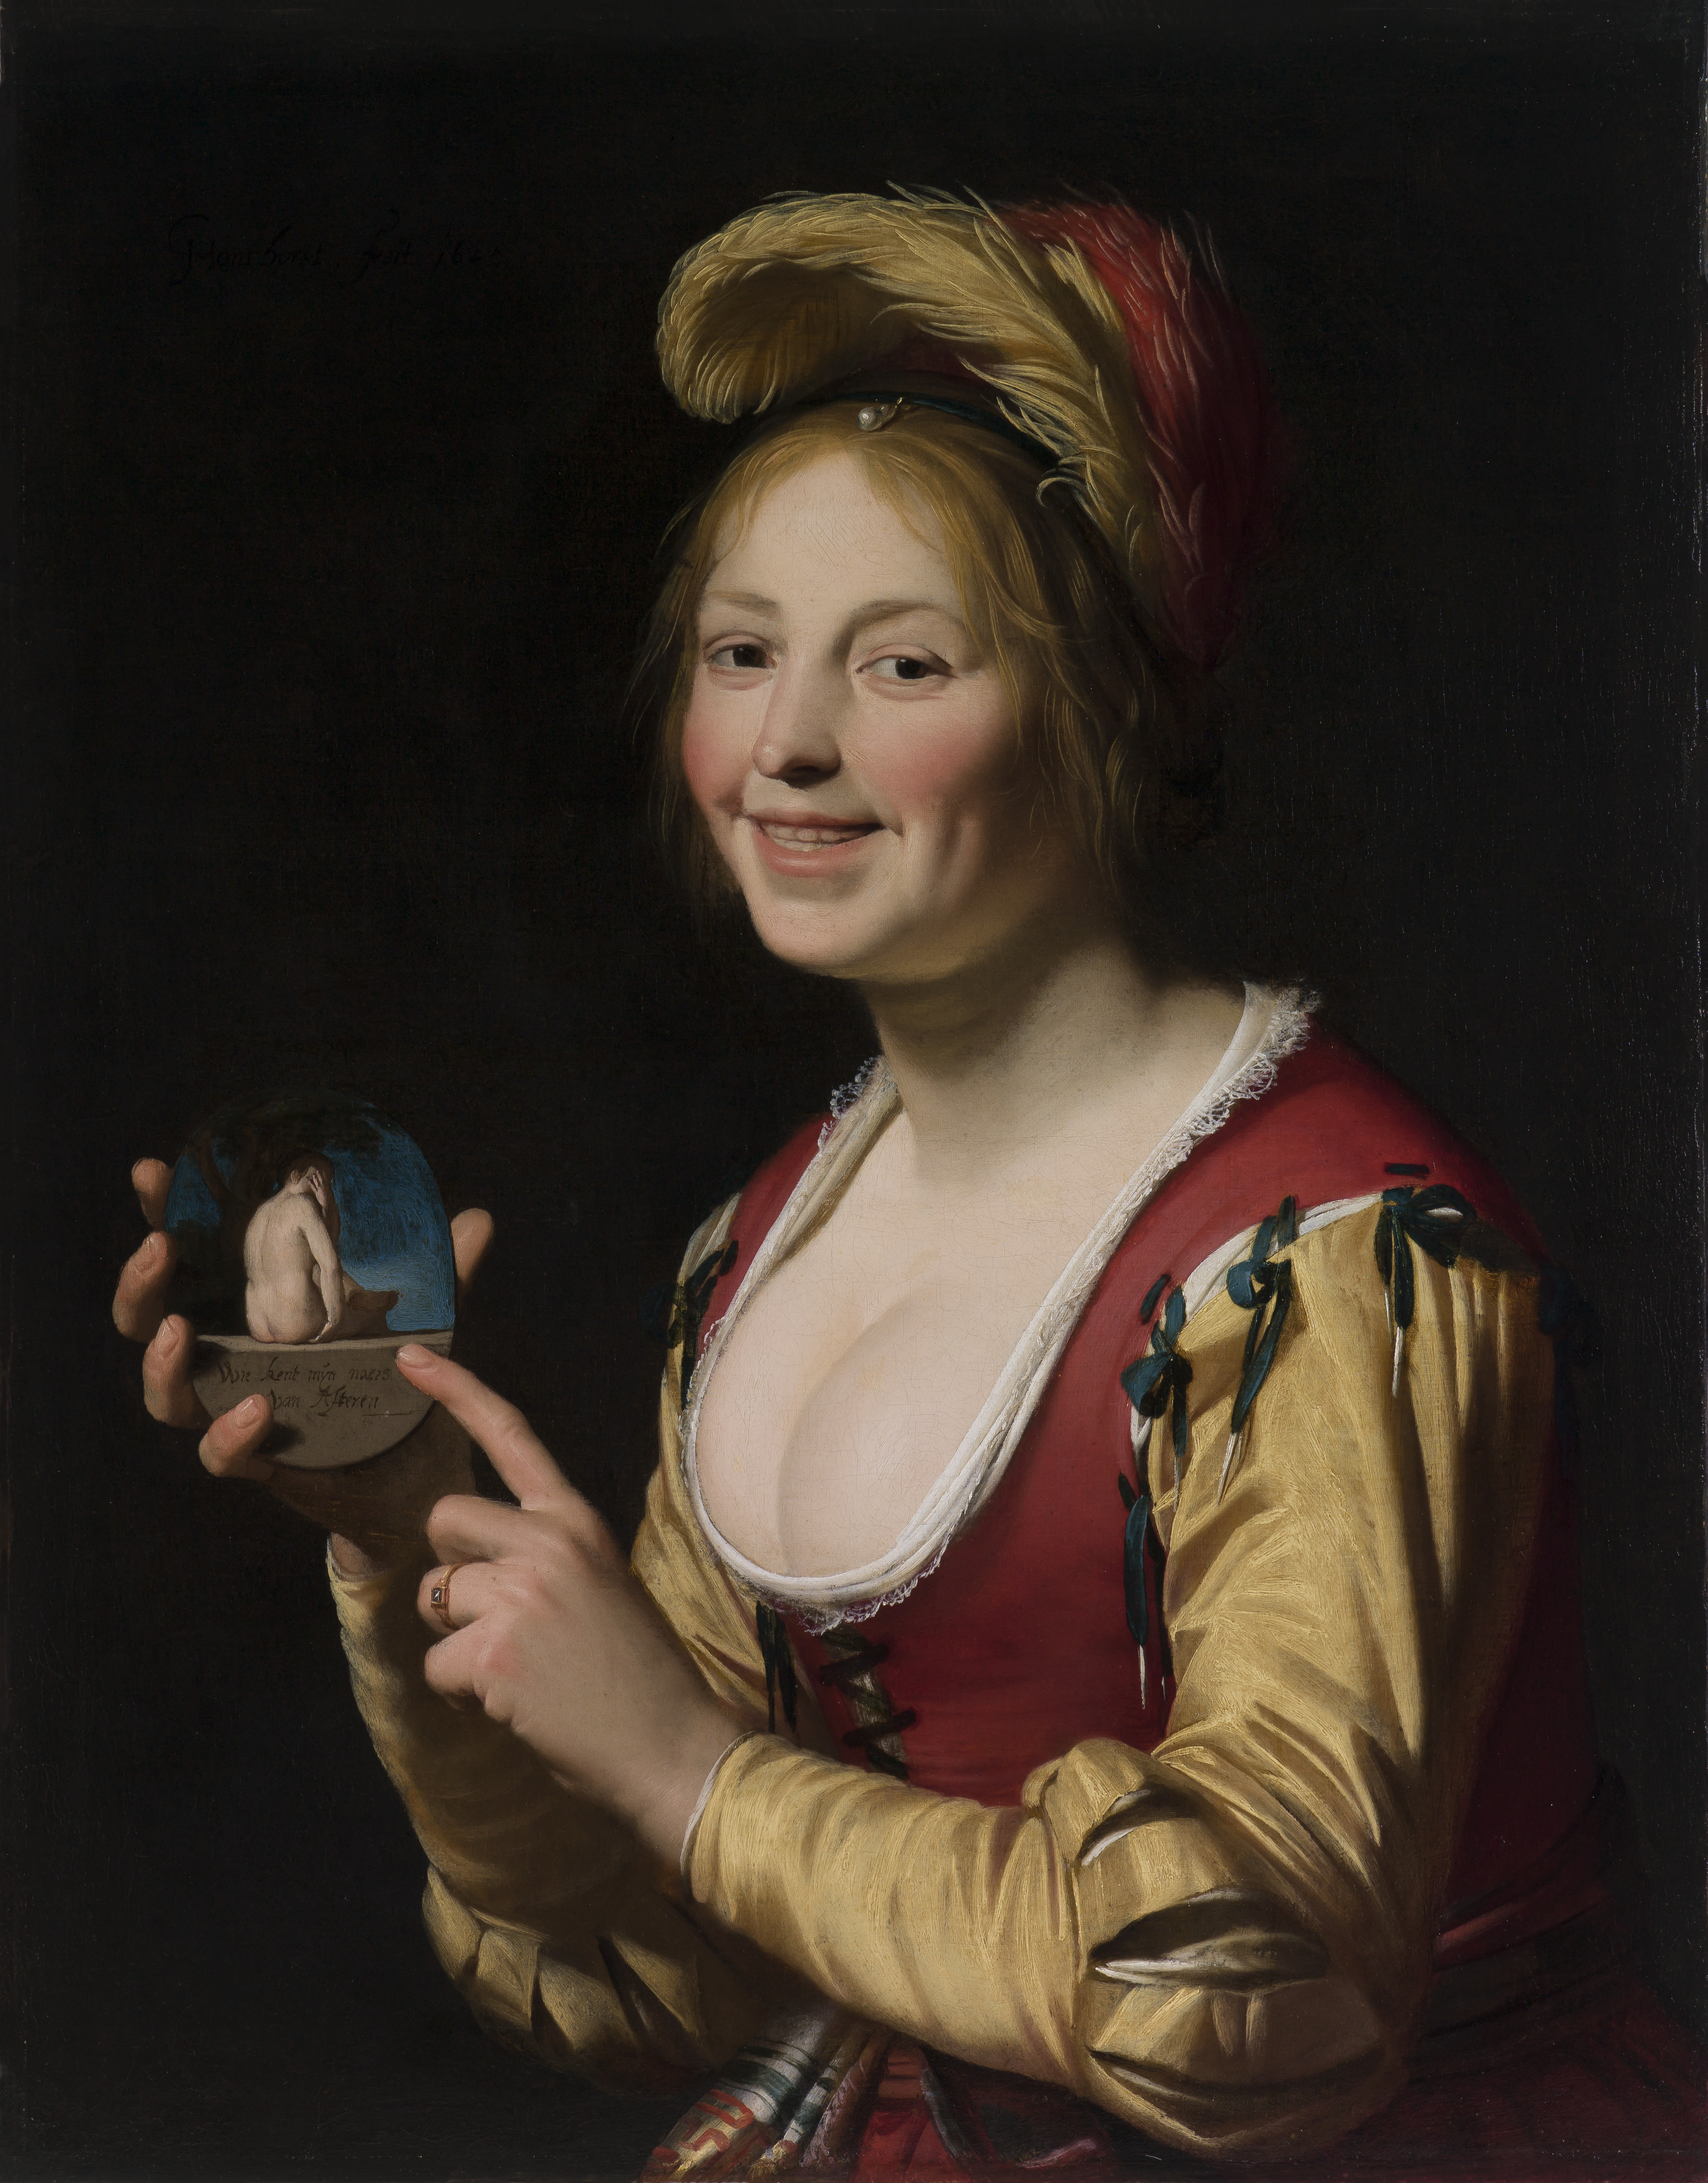 Honthorst 1625 Smiling Girl, a Courtesan, Holding an Obscene Image Saint Louis Art Museum